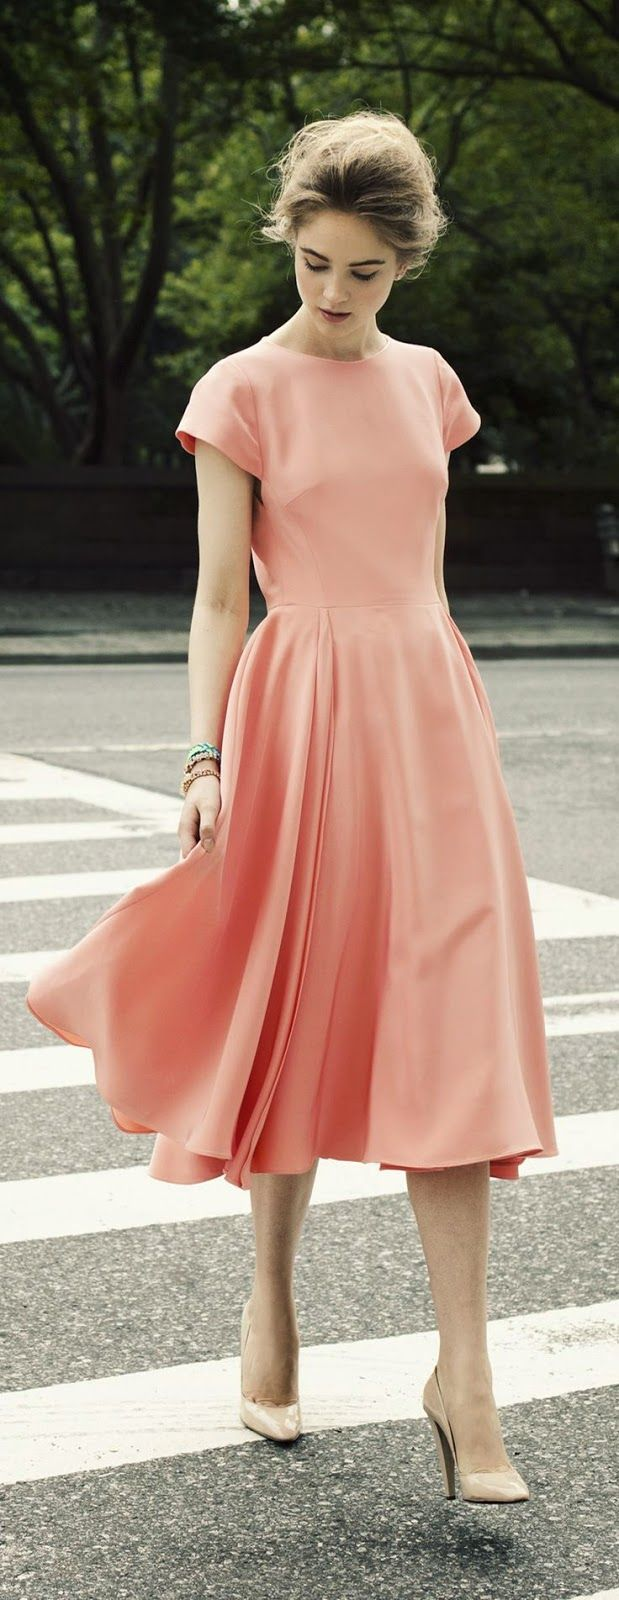 """http://www.colleenhammond.com/ Do your clothing choices, manners, and poise portray the image you want to send? """"Dress how you wish to be dealt with!"""" (E. Jean)  Lovely Pale pink dress"""